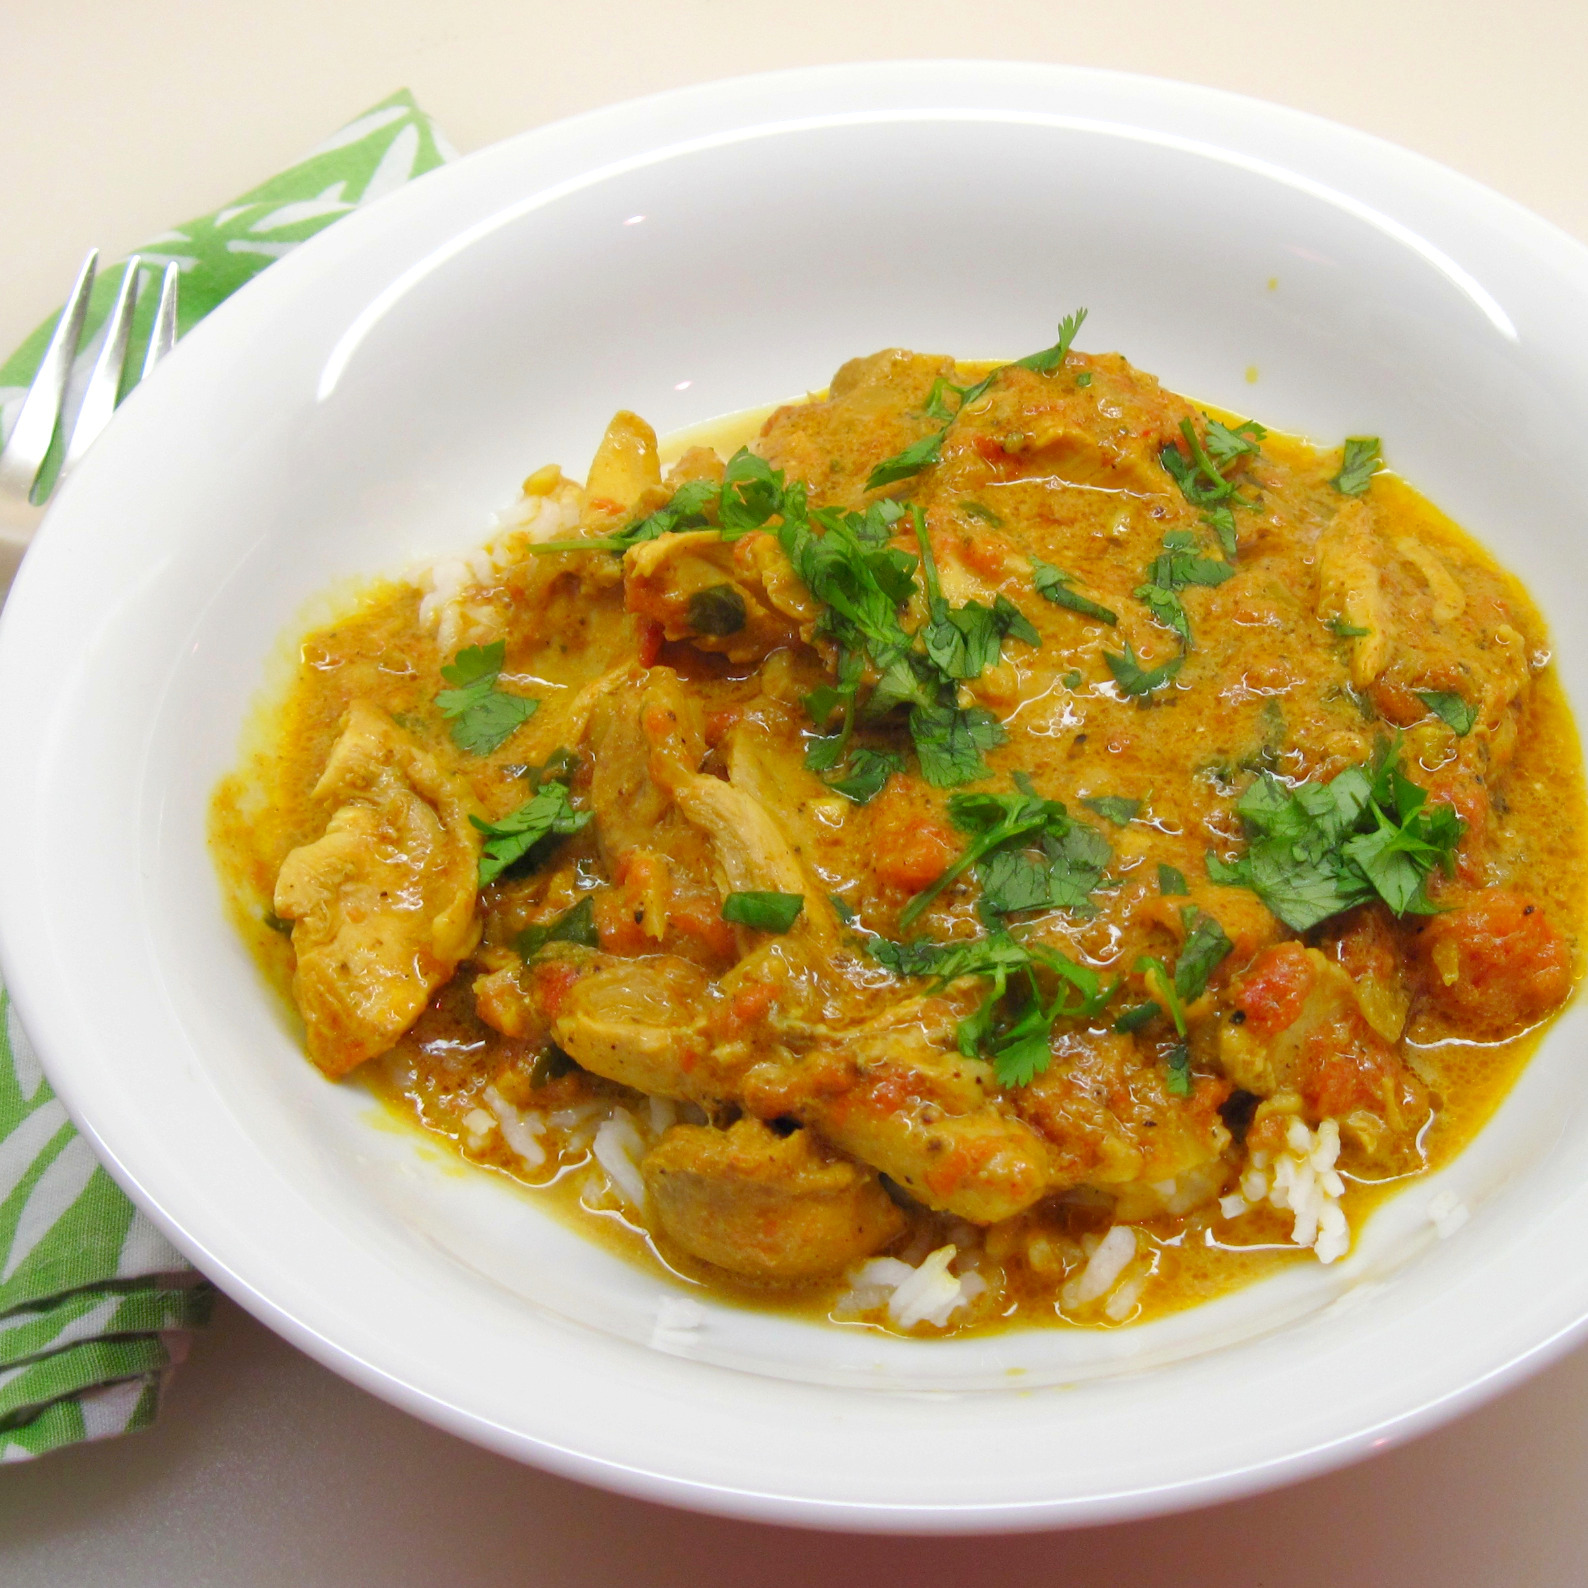 Vij's Family's Chicken Curry | In the kitchen with Kath